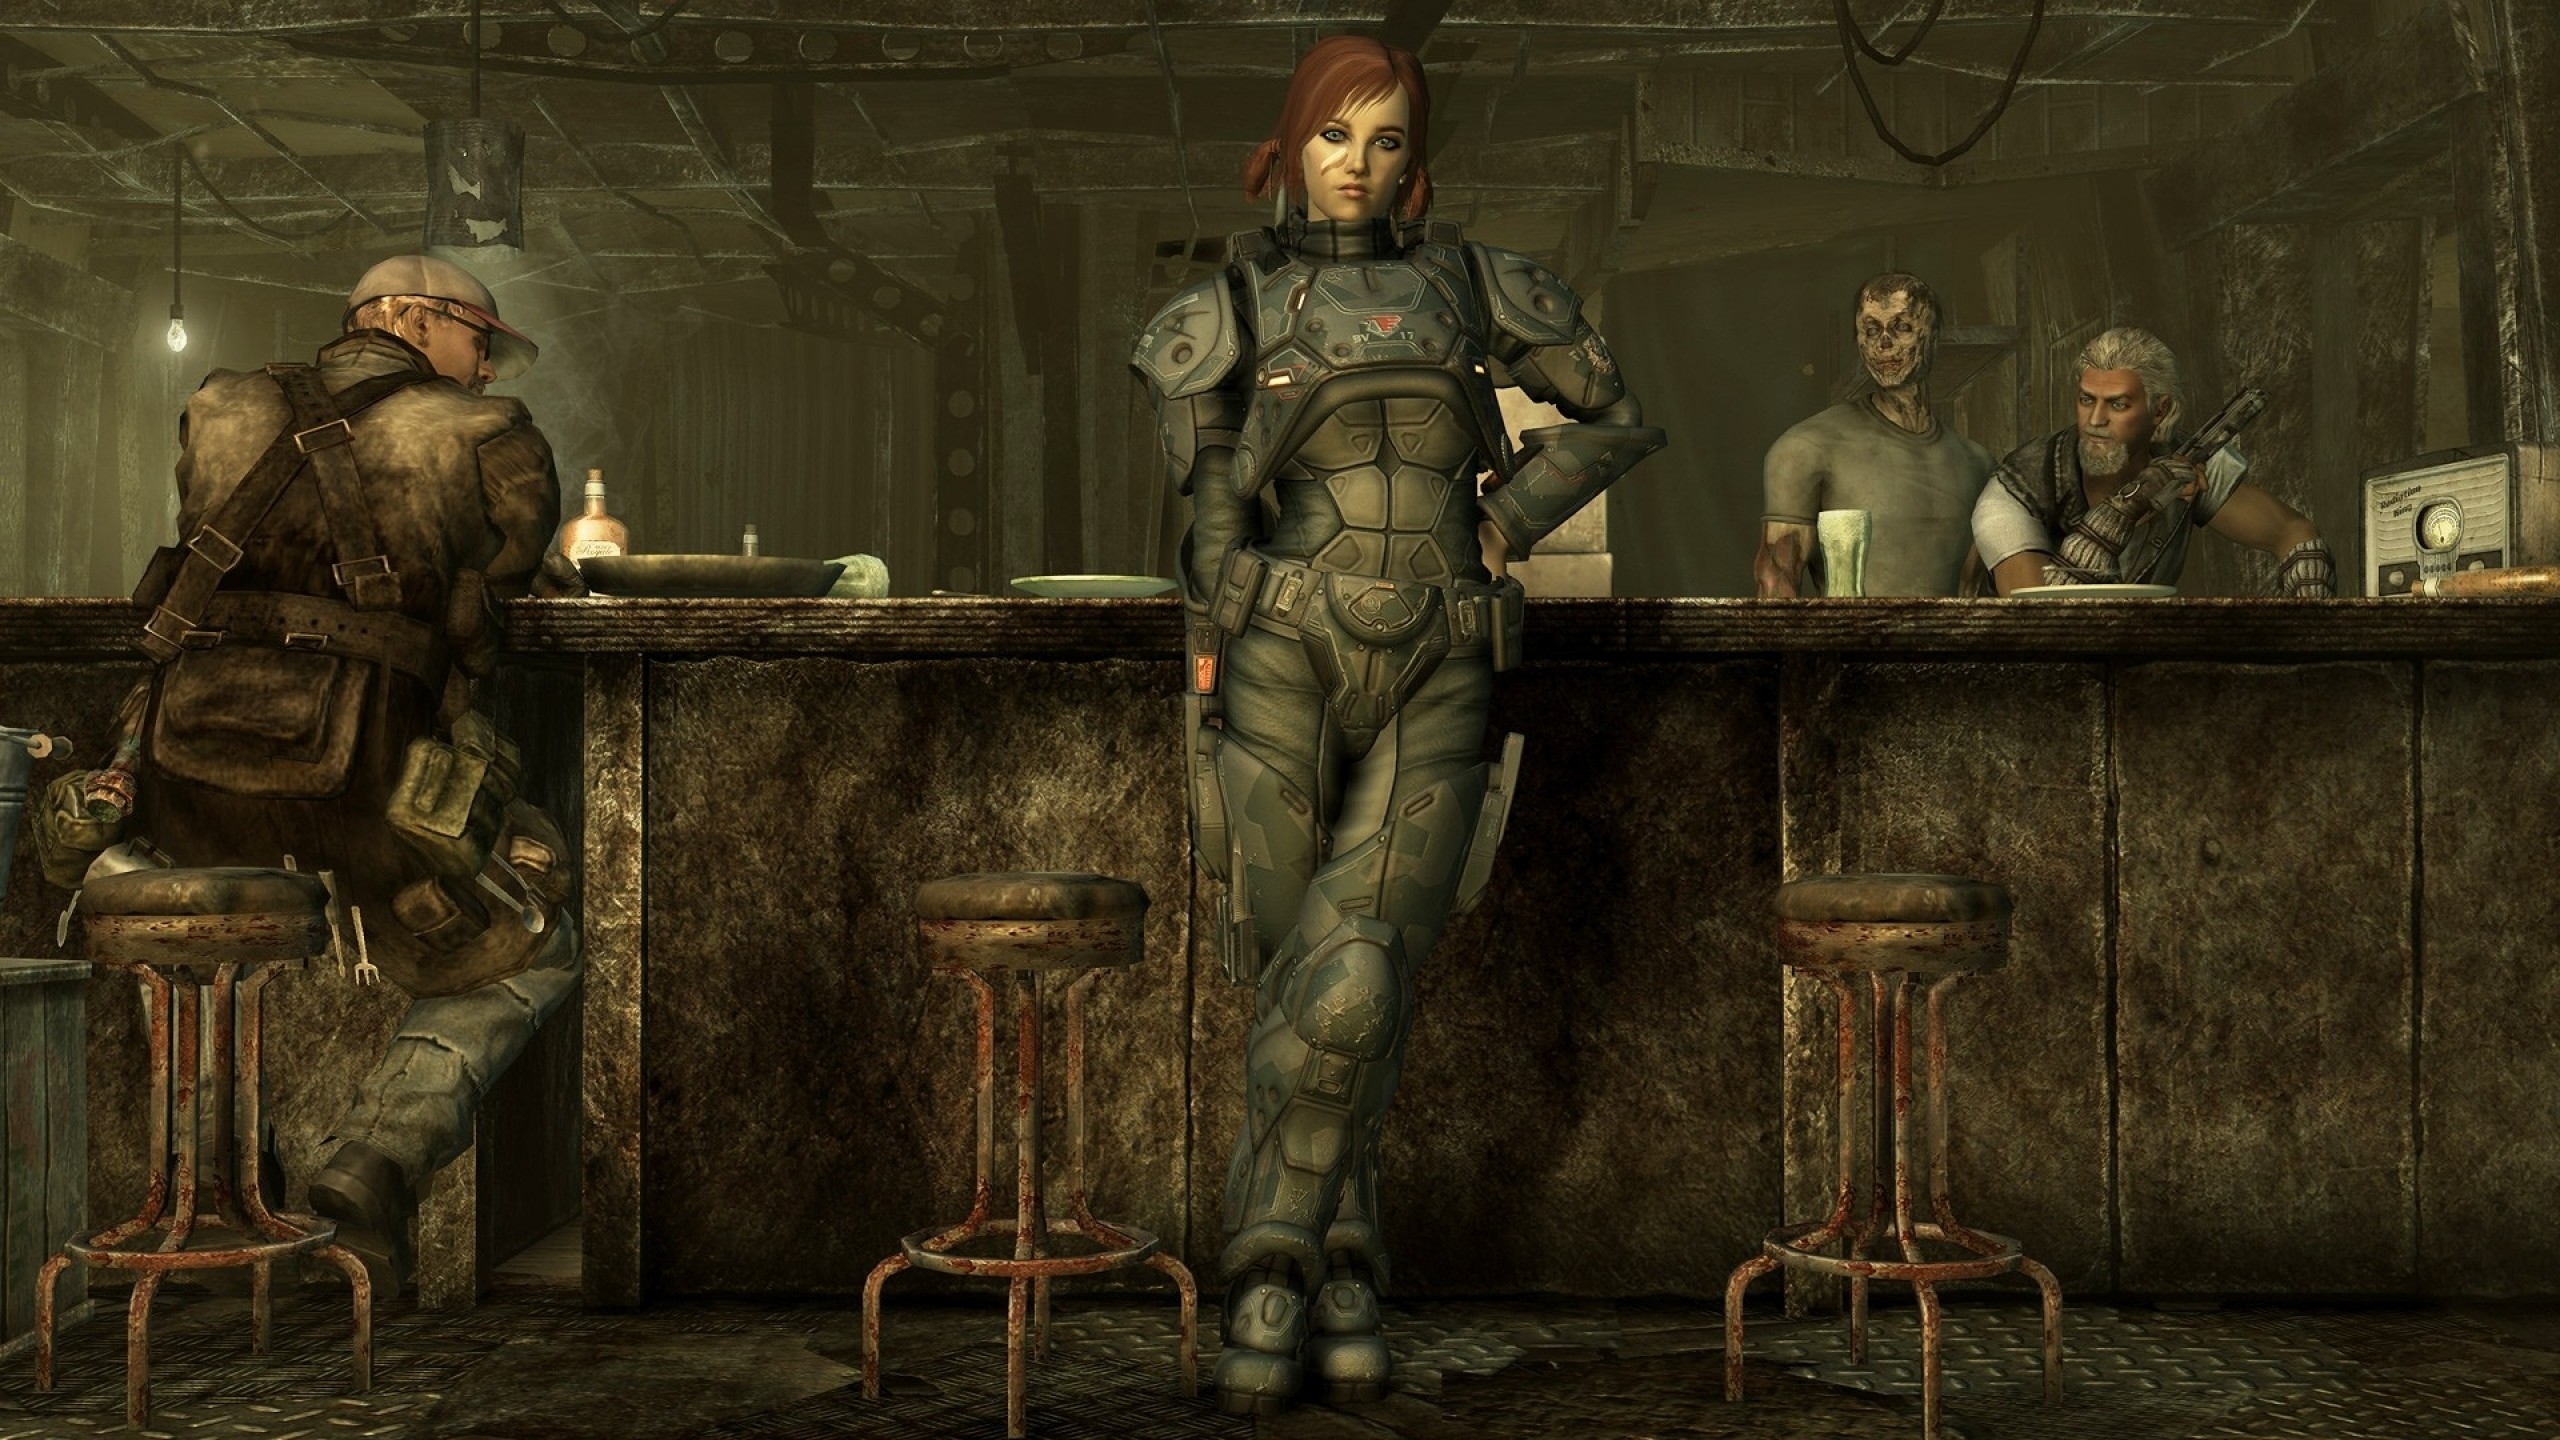 2560x1440 wallpaper.wiki-Video-Game-Fallout-3-Wallpapers-HD-